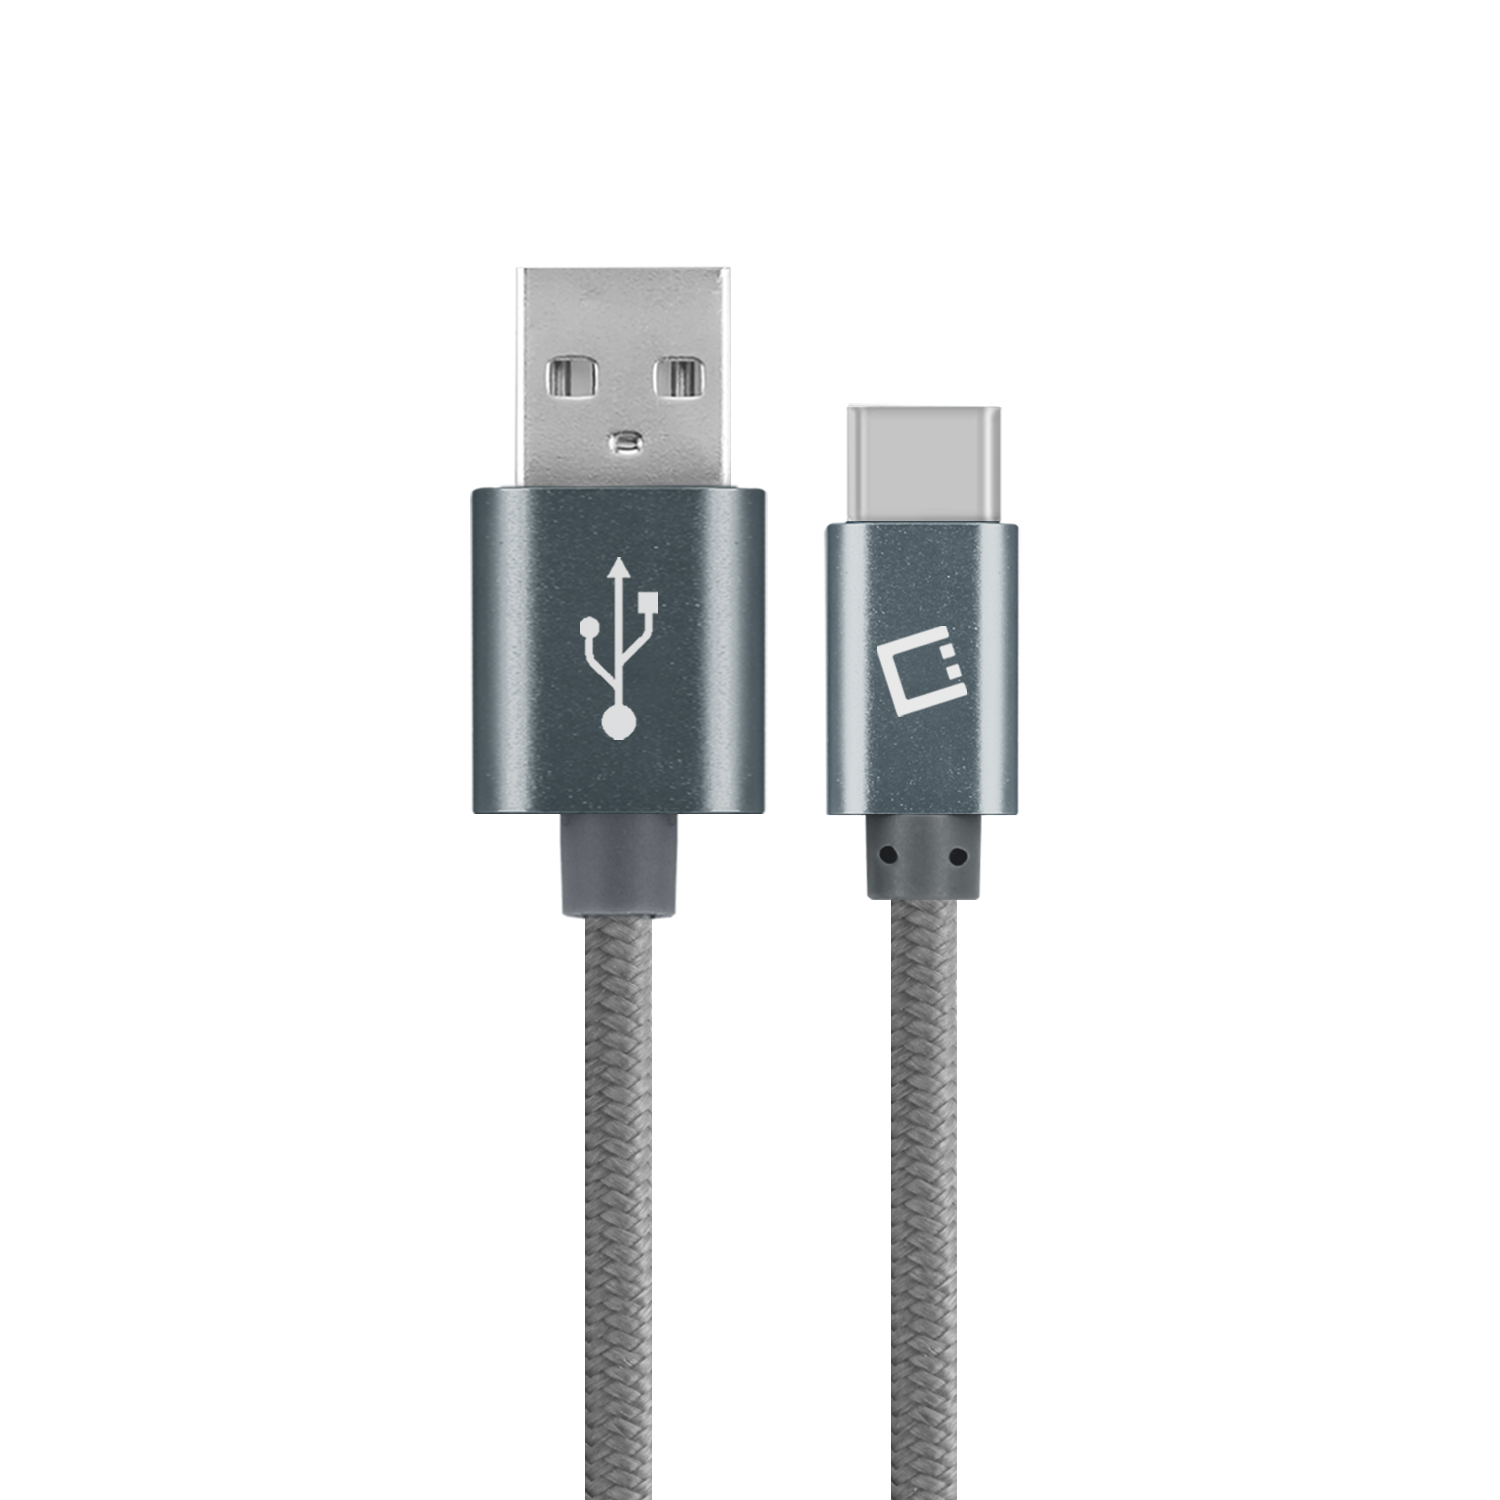 Huawei P9 USB Type-C To Type-A Braided Data Power Cable Grey 10ft Braided